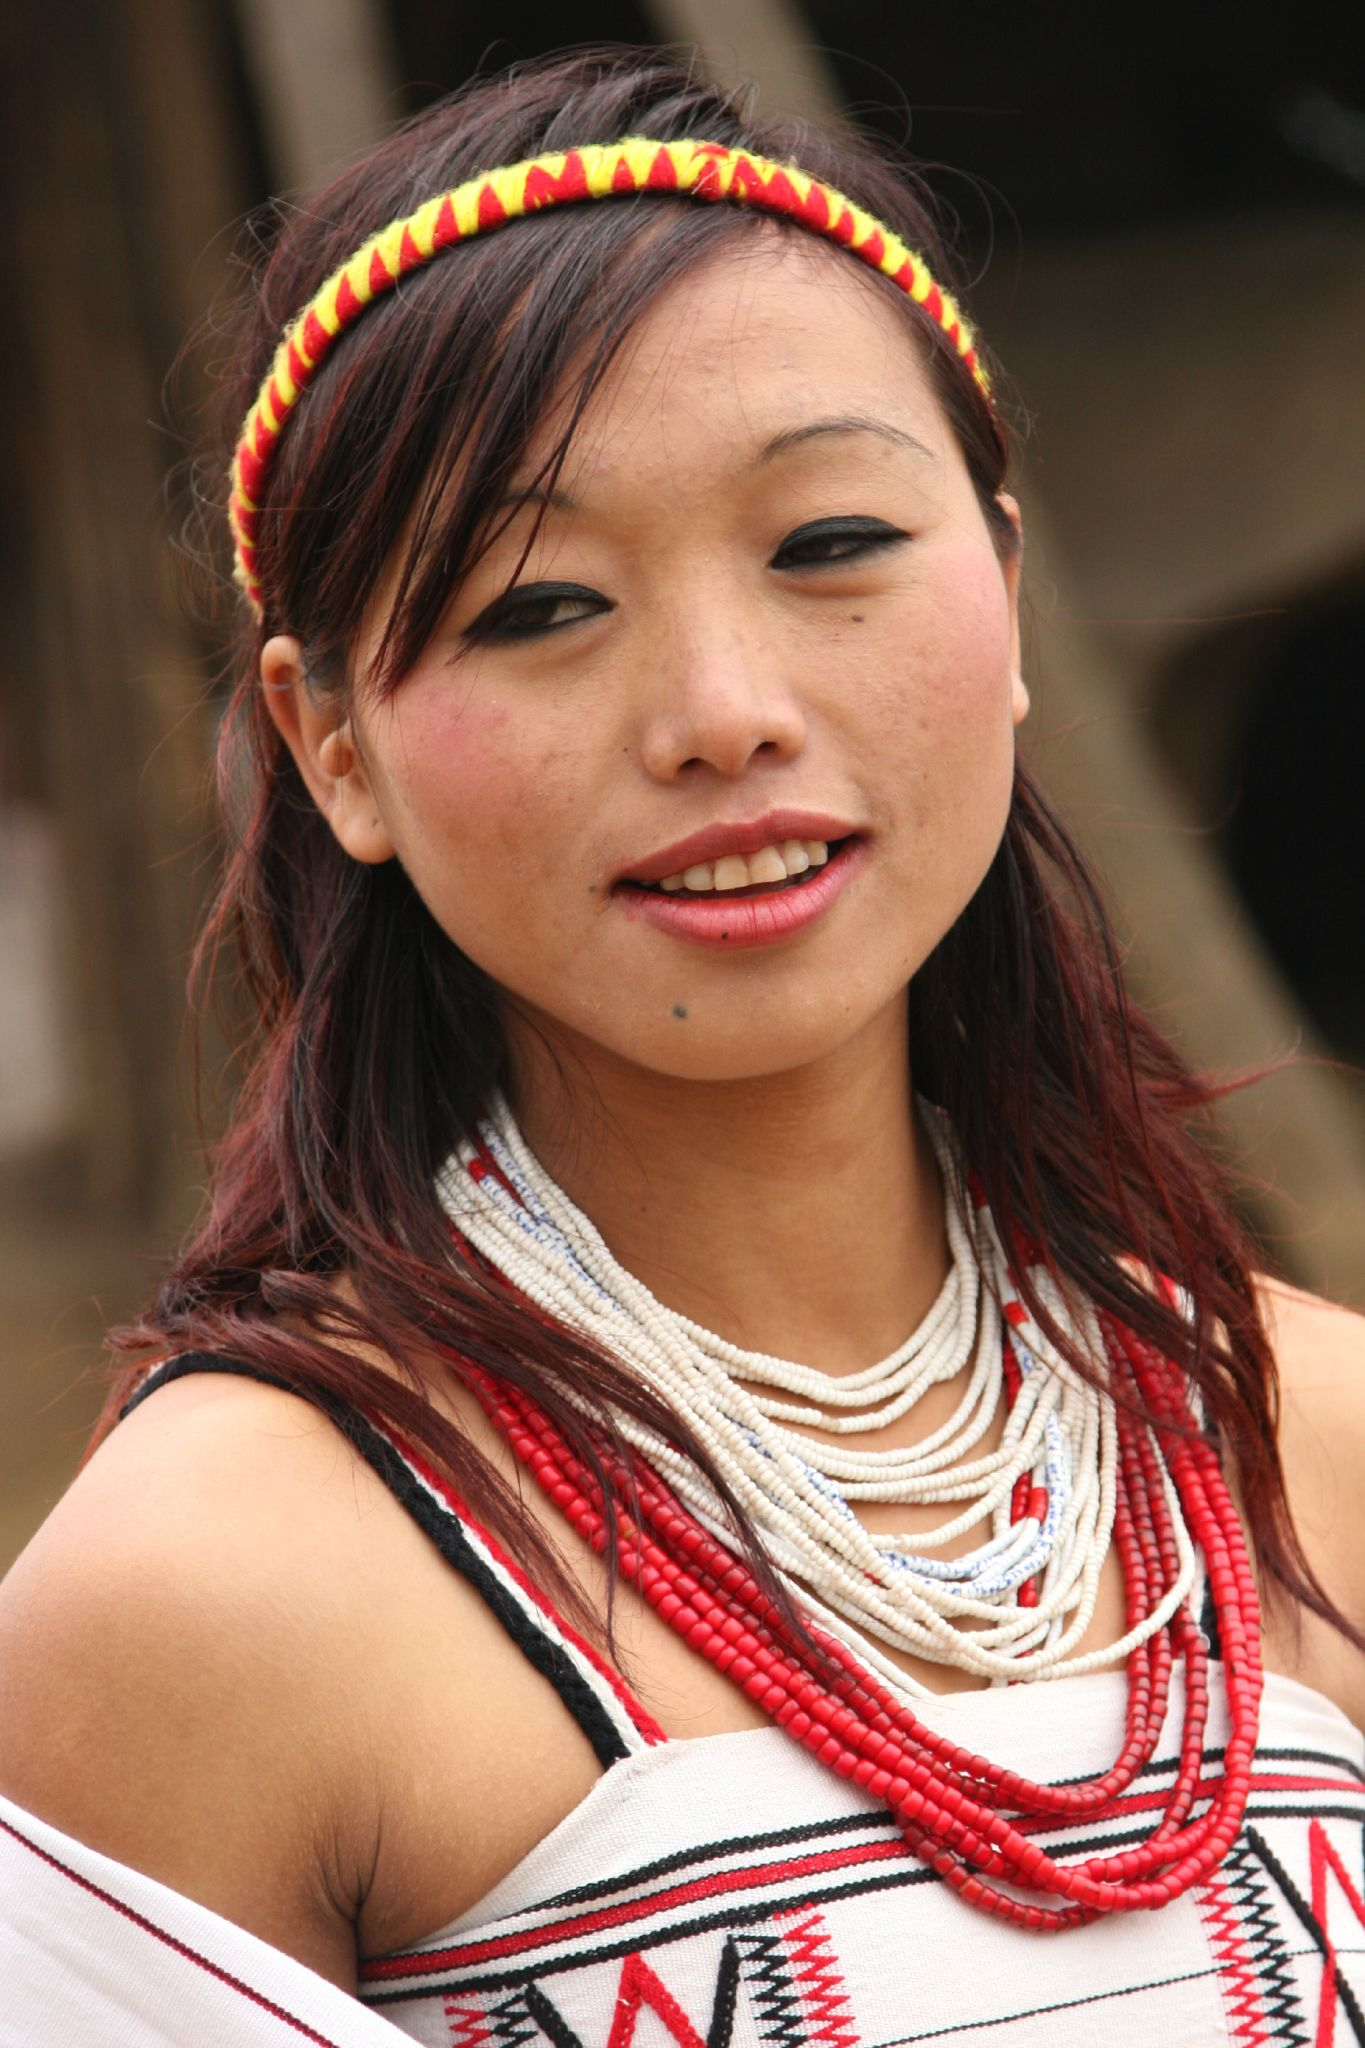 Naked image of naga girls of nagaland pornos comic